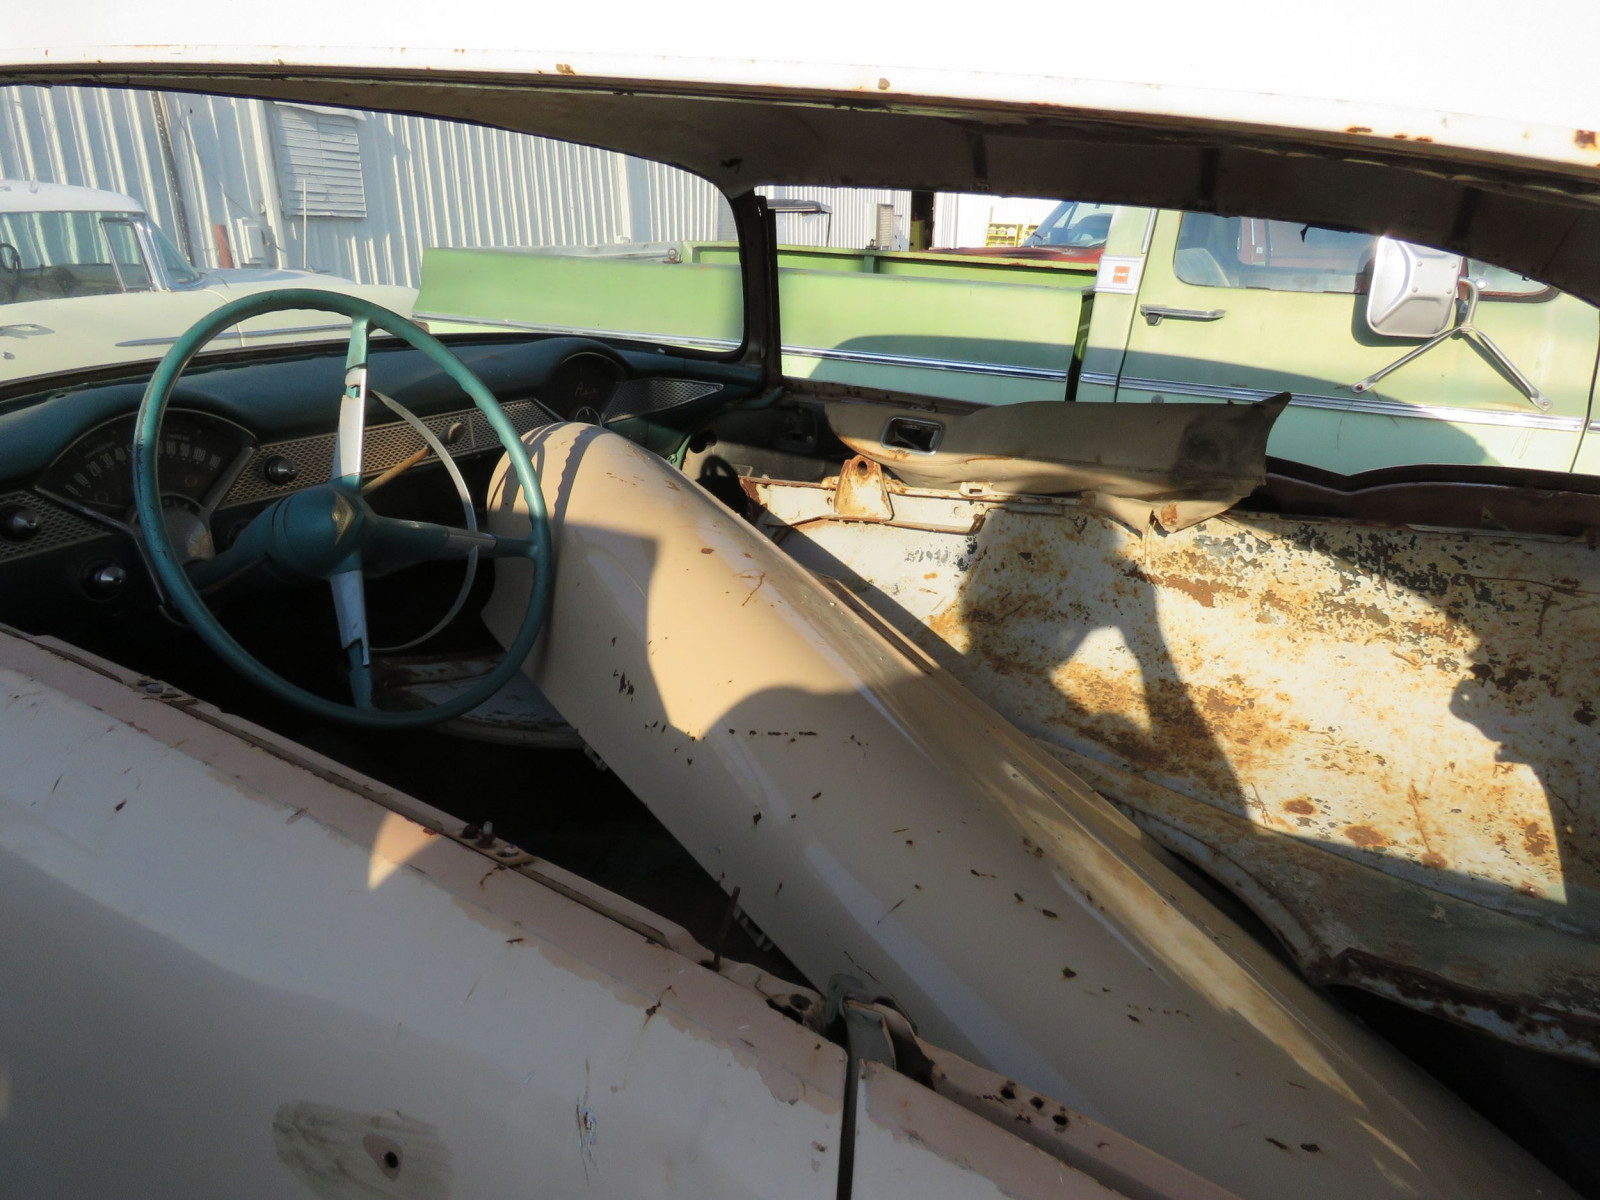 1955 Chevrolet for project - Image 3